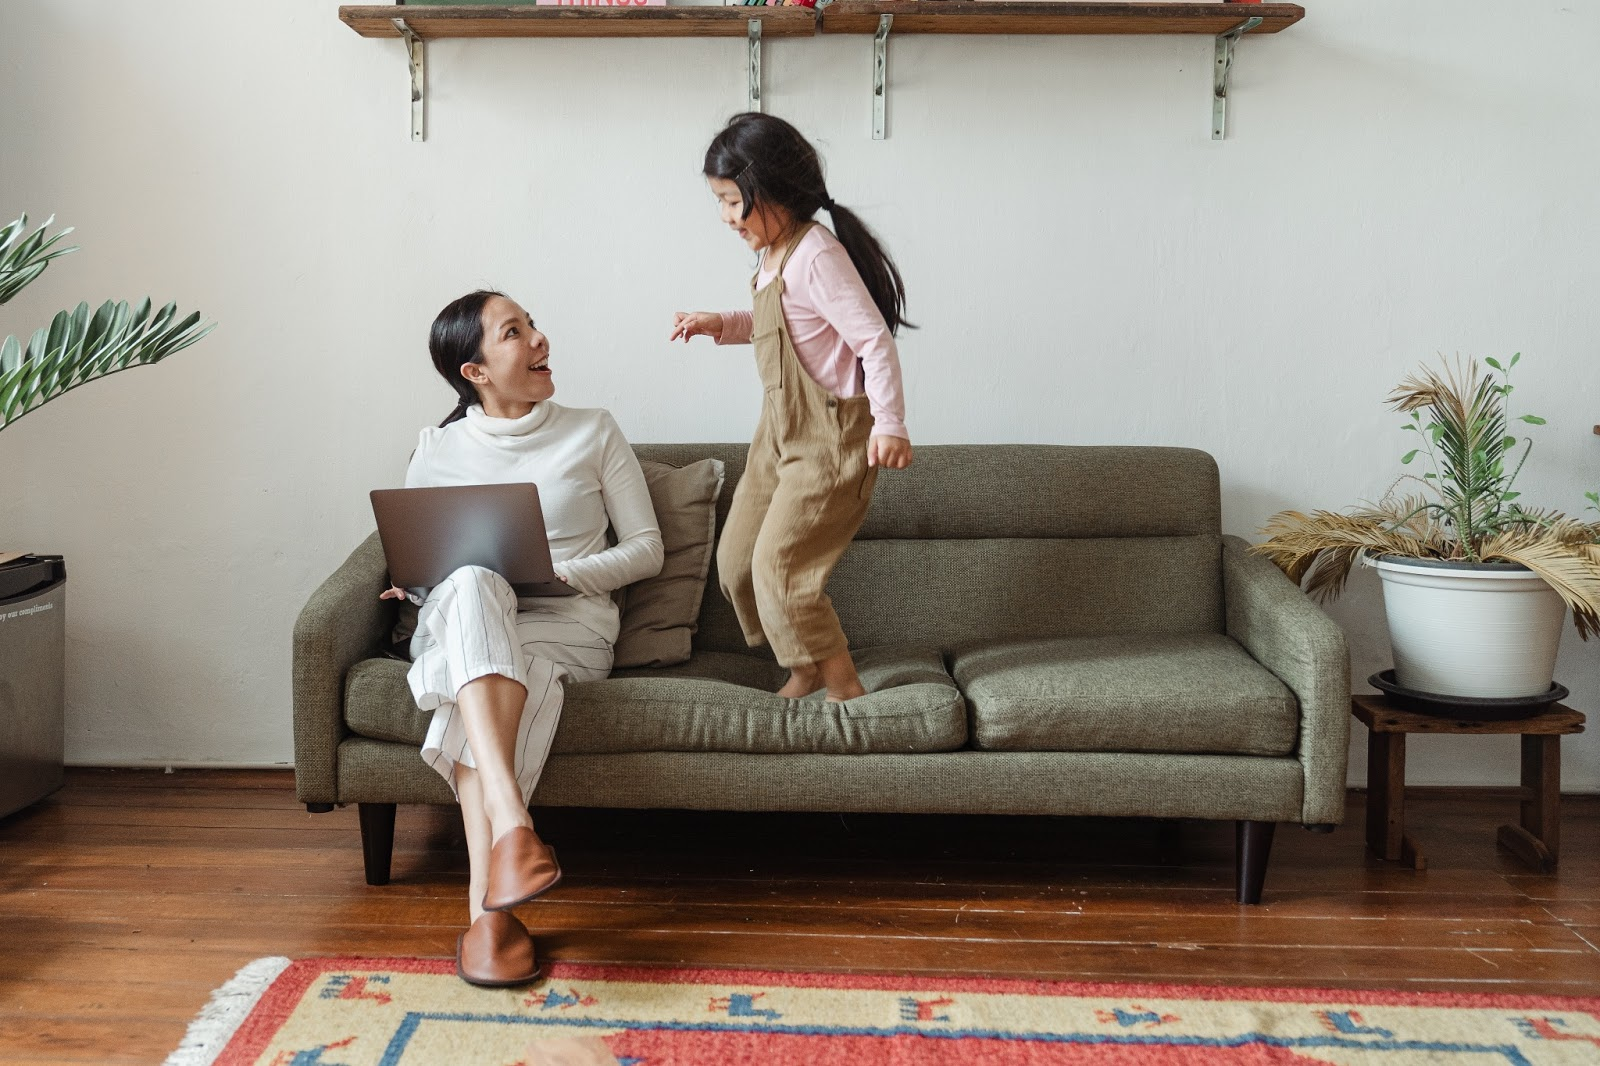 Mom working on computer with daughter jumping on couch next to her